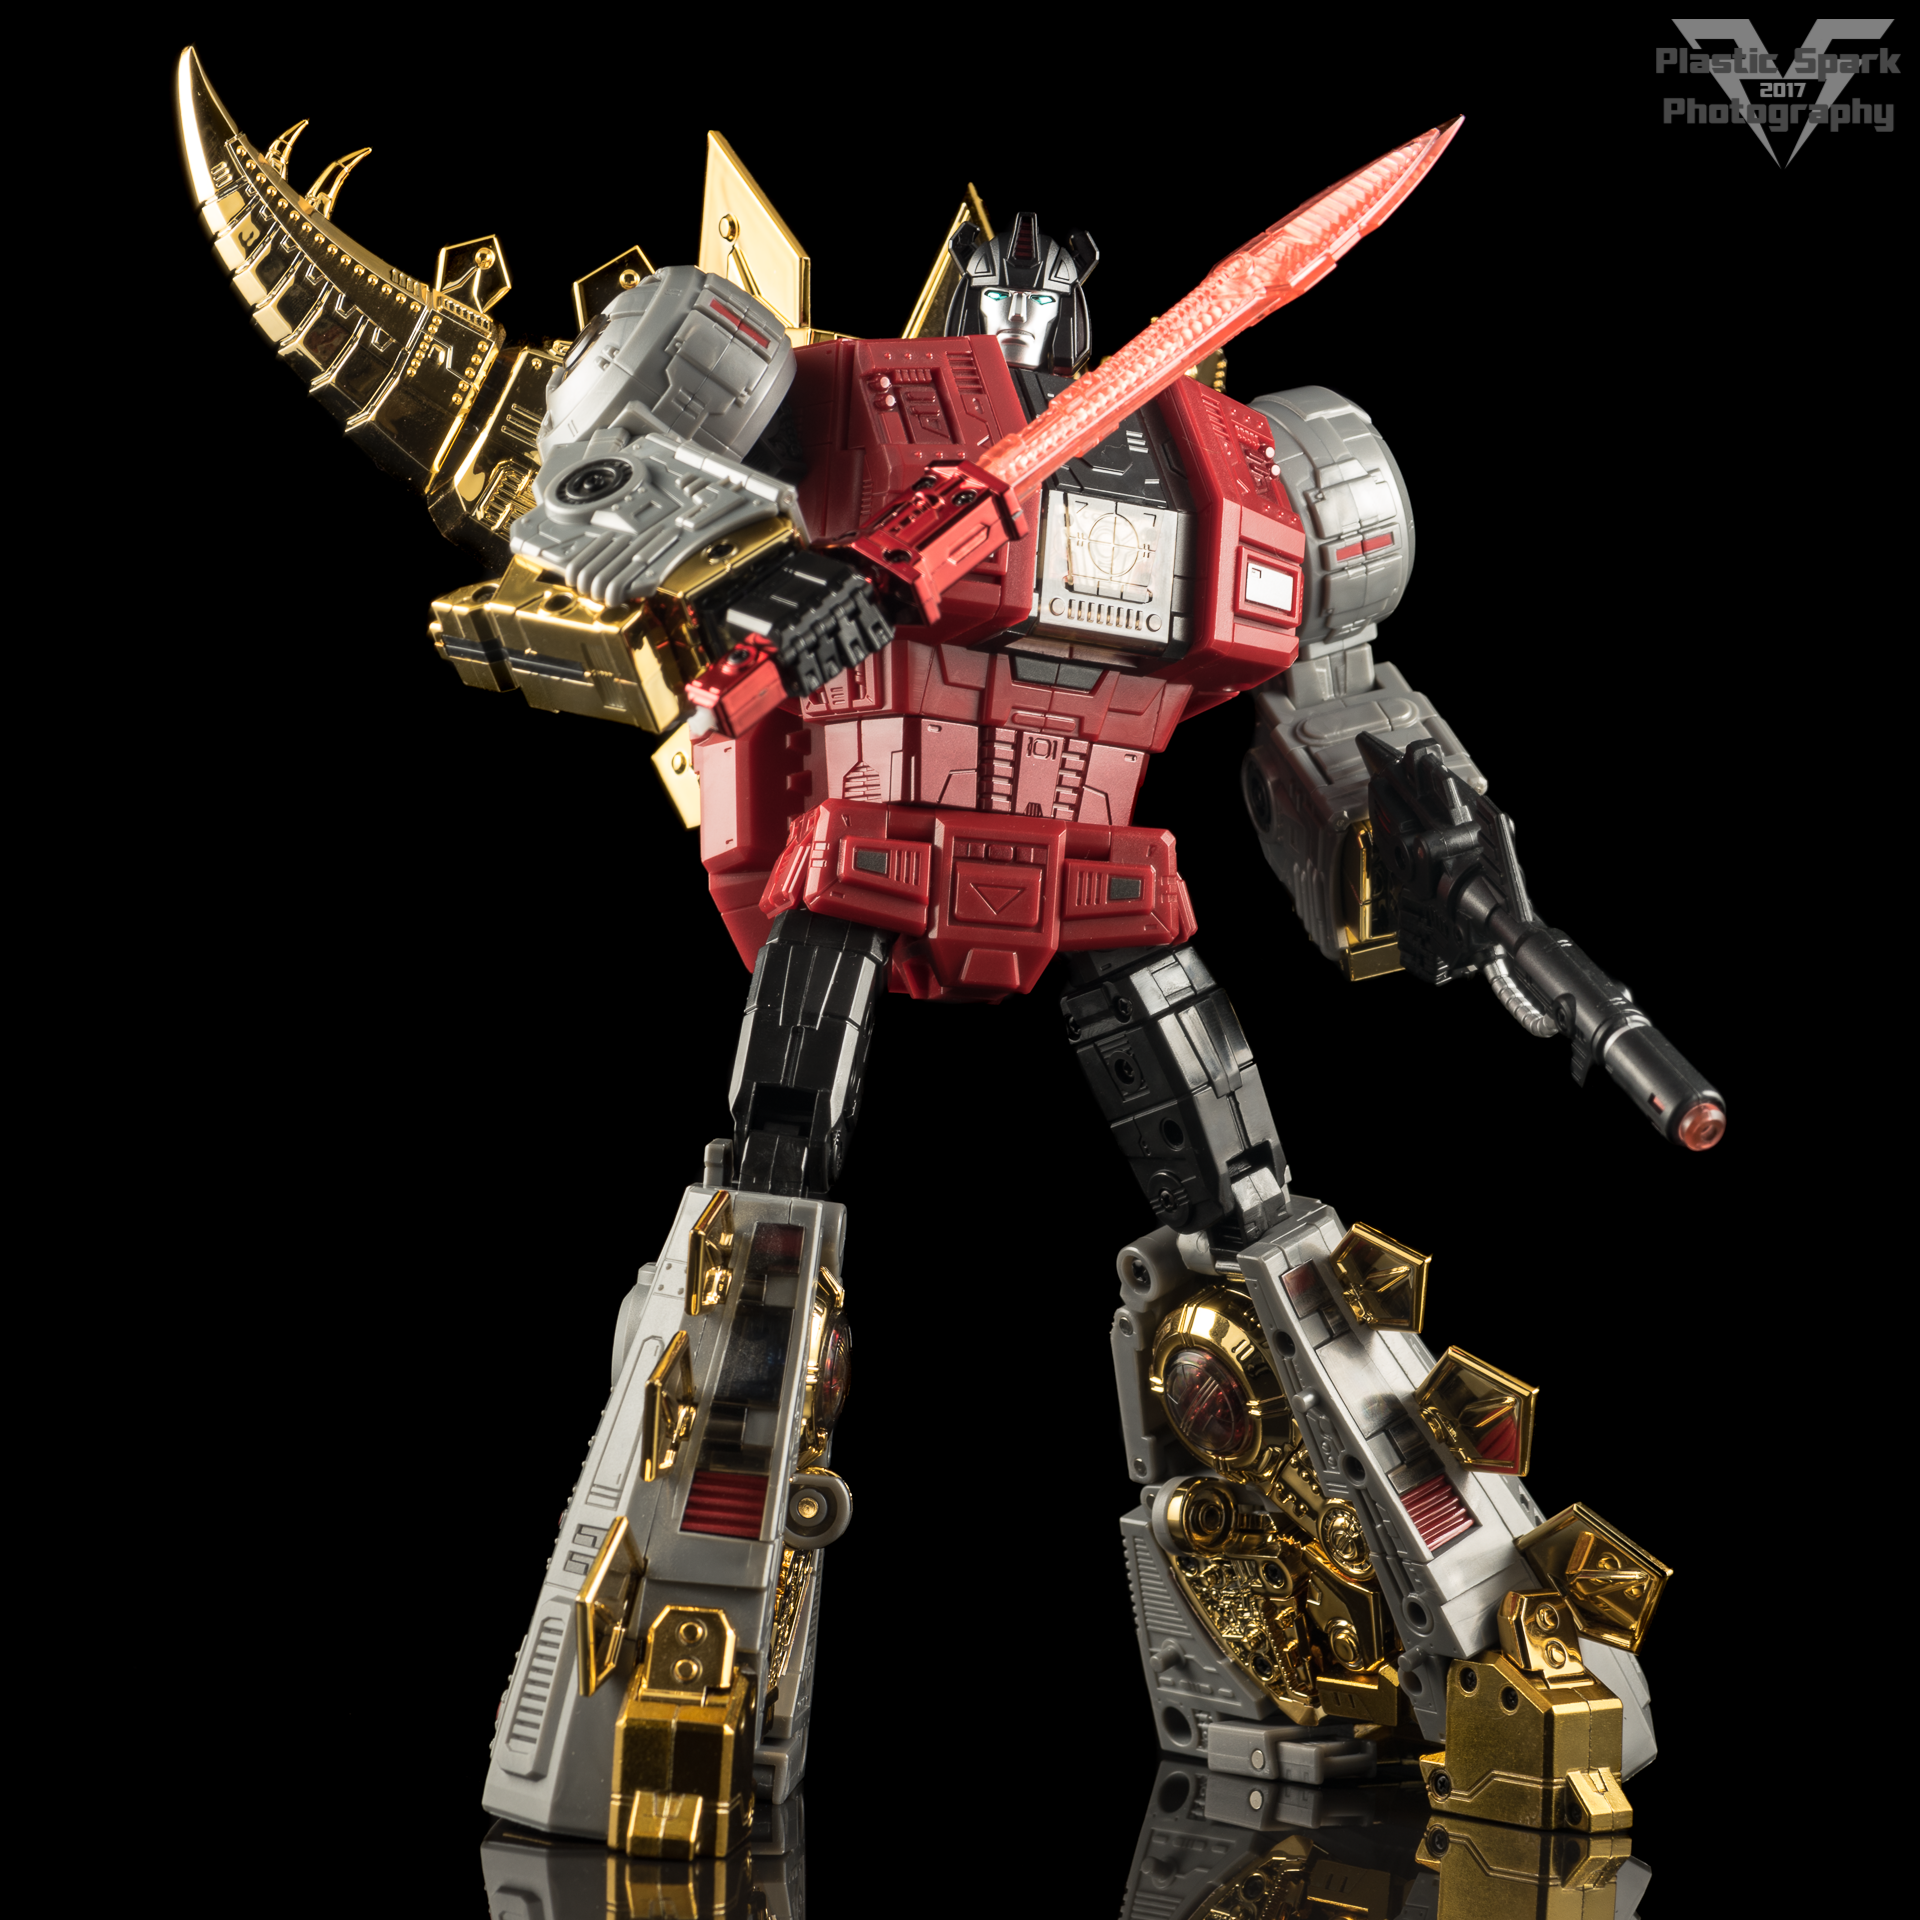 Fans-Toys-Iron-Dibots-(31-of-41).png